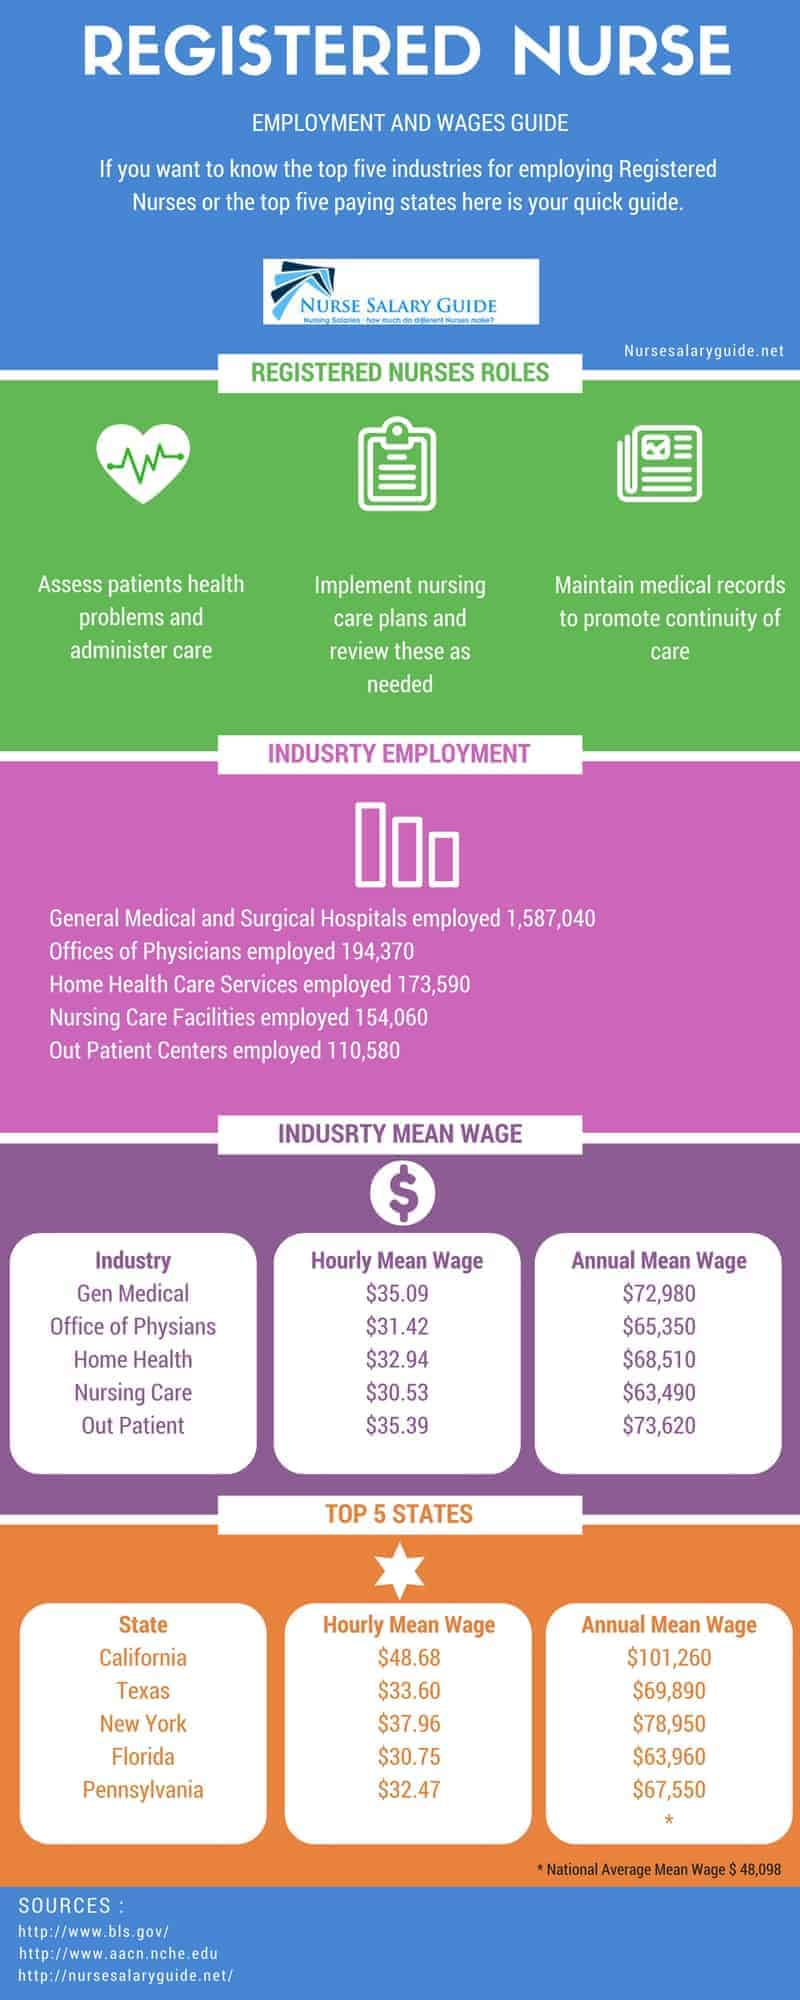 How To Become A Registered Nurse - the Simple Guide - Nurse Salary Guide